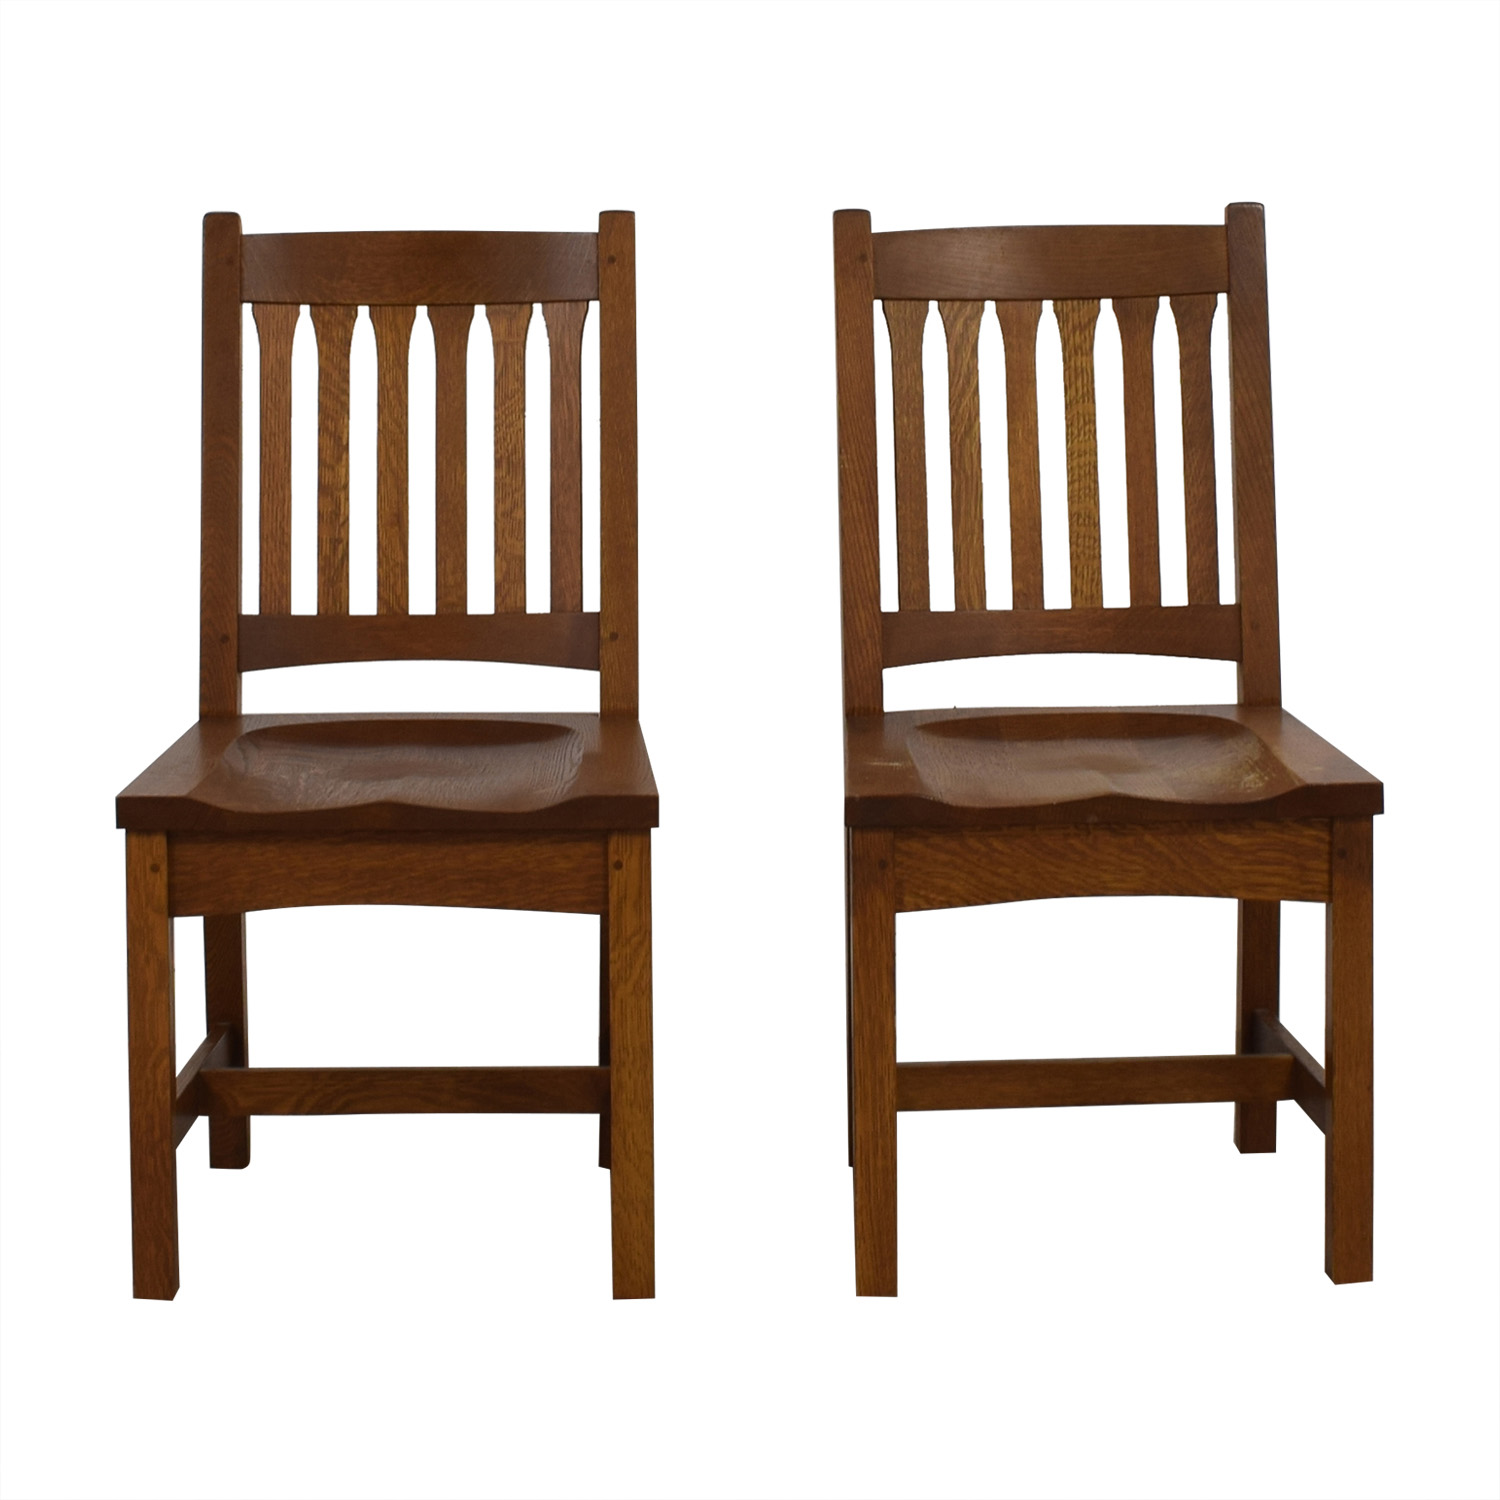 shop Stickley Audi & Co Handcrafted Wooden Chairs Stickley Audi & Co Dining Chairs